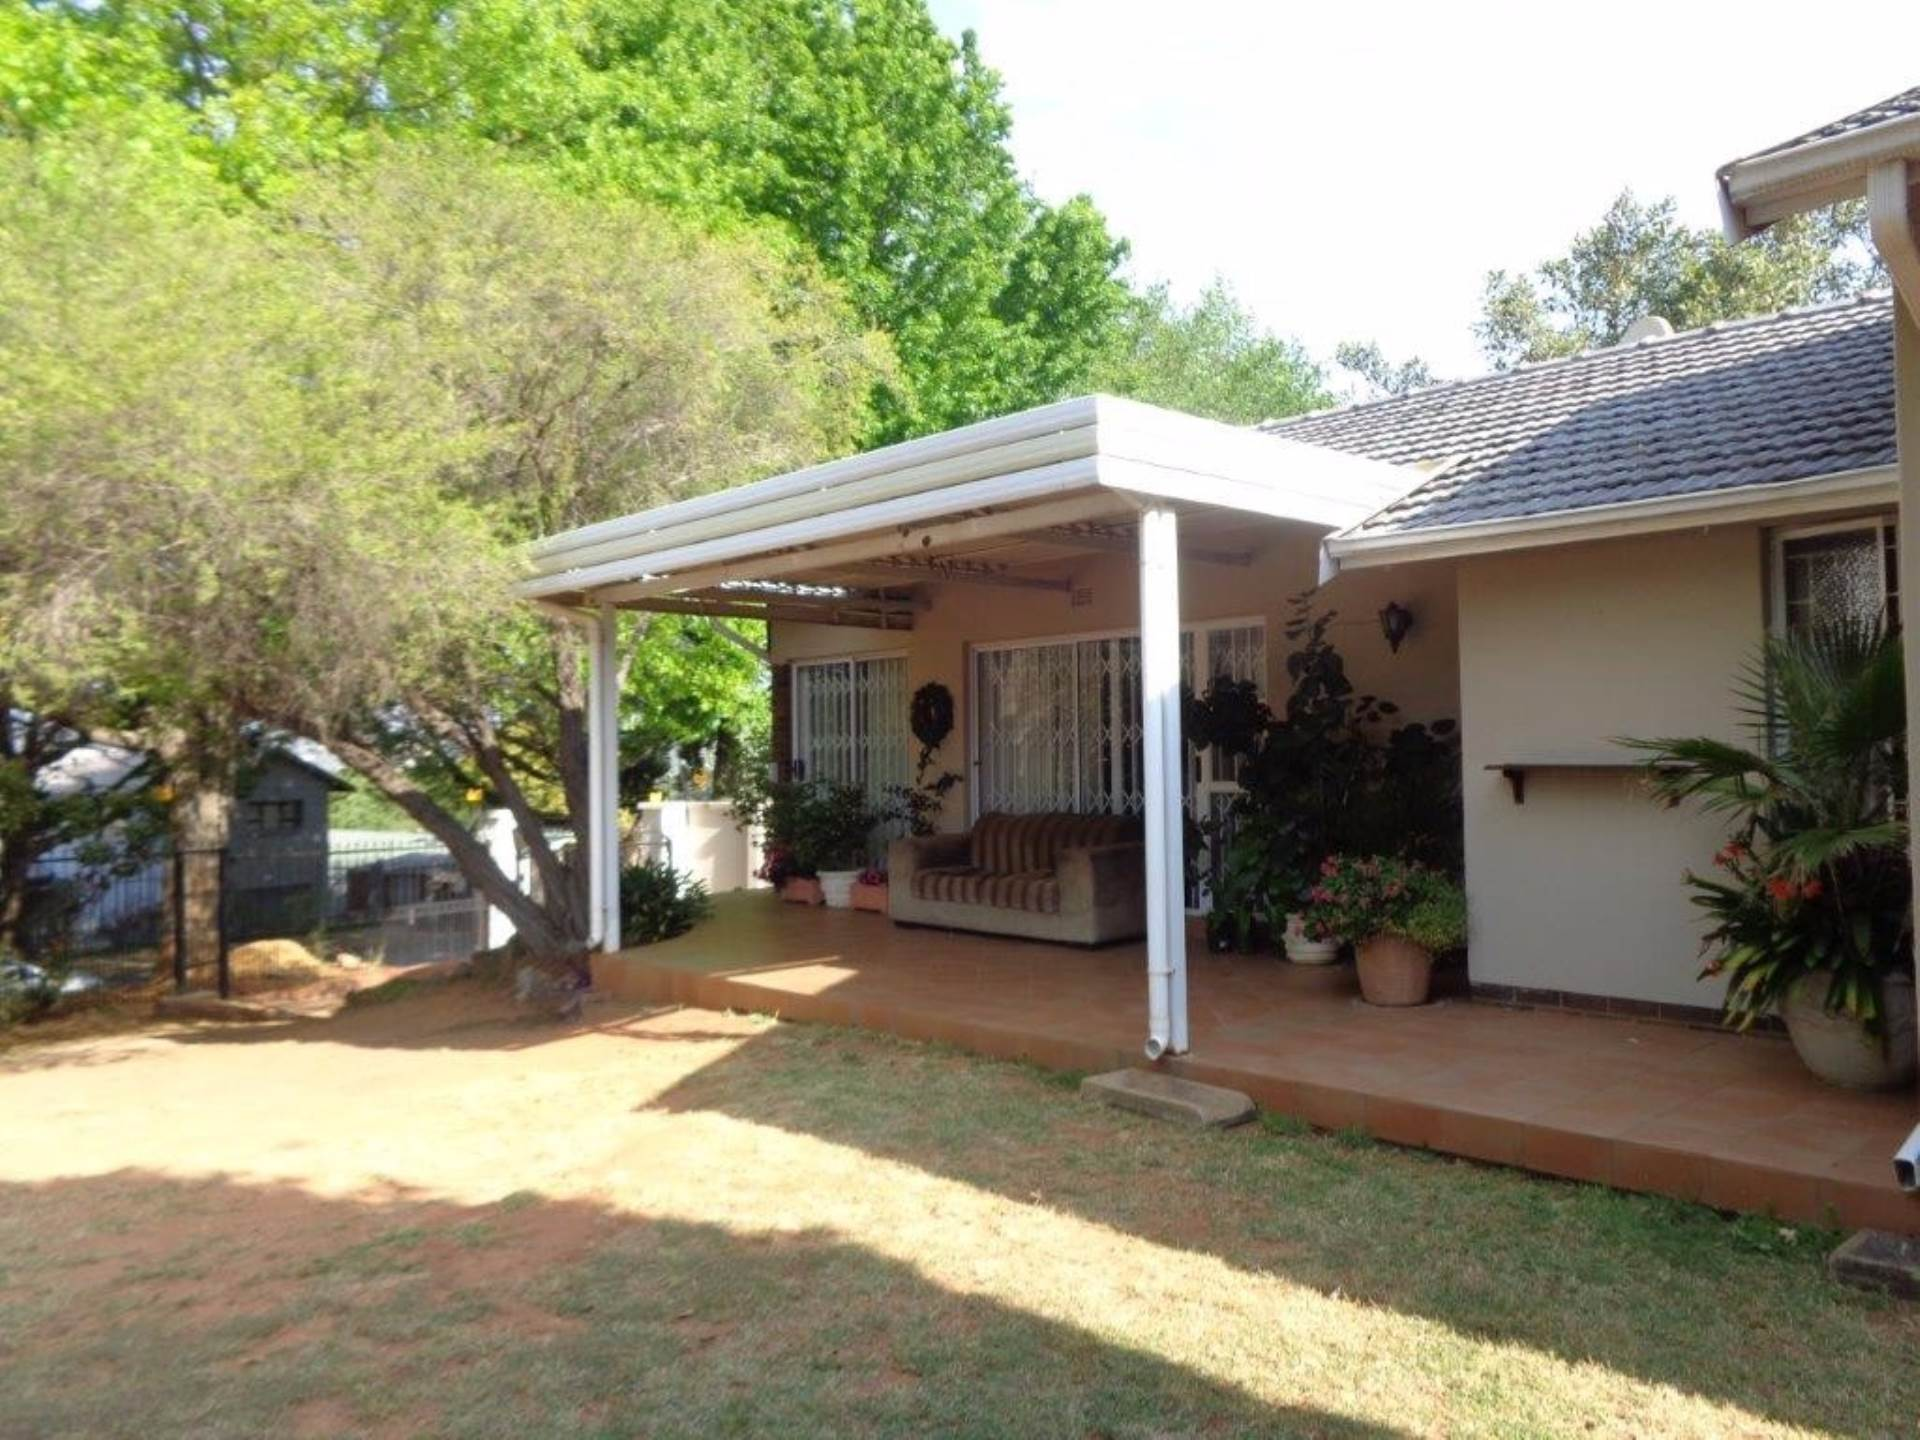 3 BedroomHouse For Sale In Blairgowrie